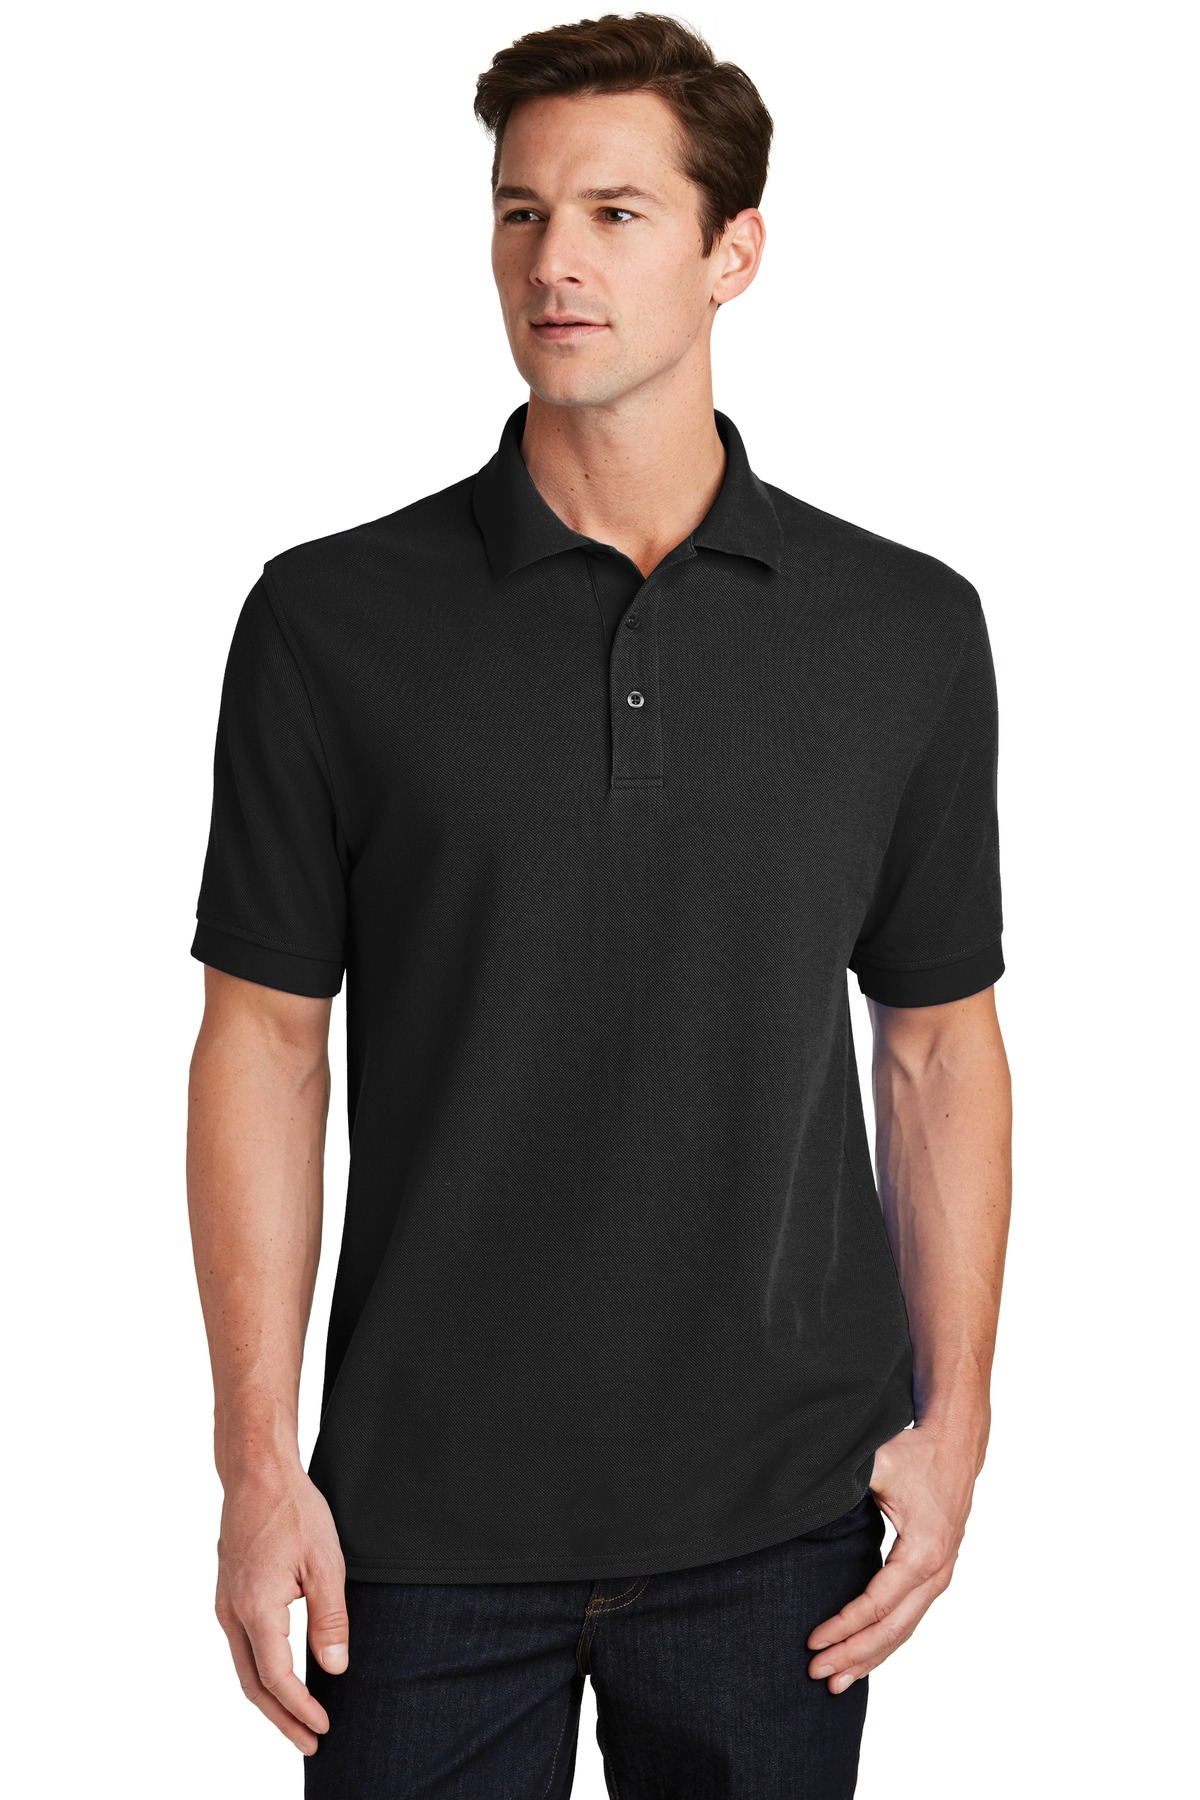 Port & Company ®  Combed Ring Spun Pique Polo. KP1500 - Jet Black